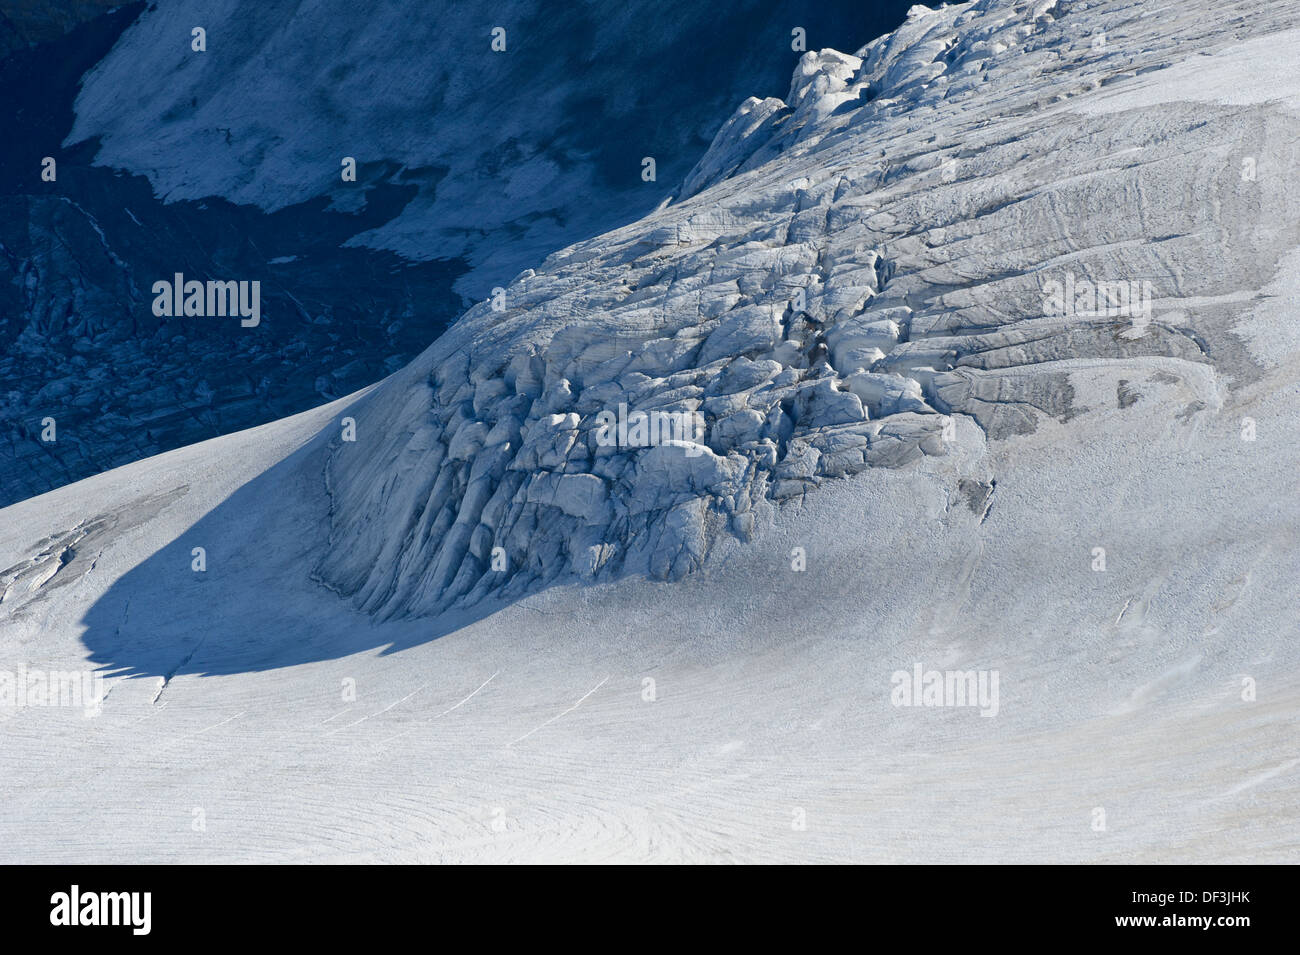 Austria / Hohe Tauern National Park - Impacts of Climate Change: glacier melting. Serac zone at Mount Grossglockner. - Stock Image